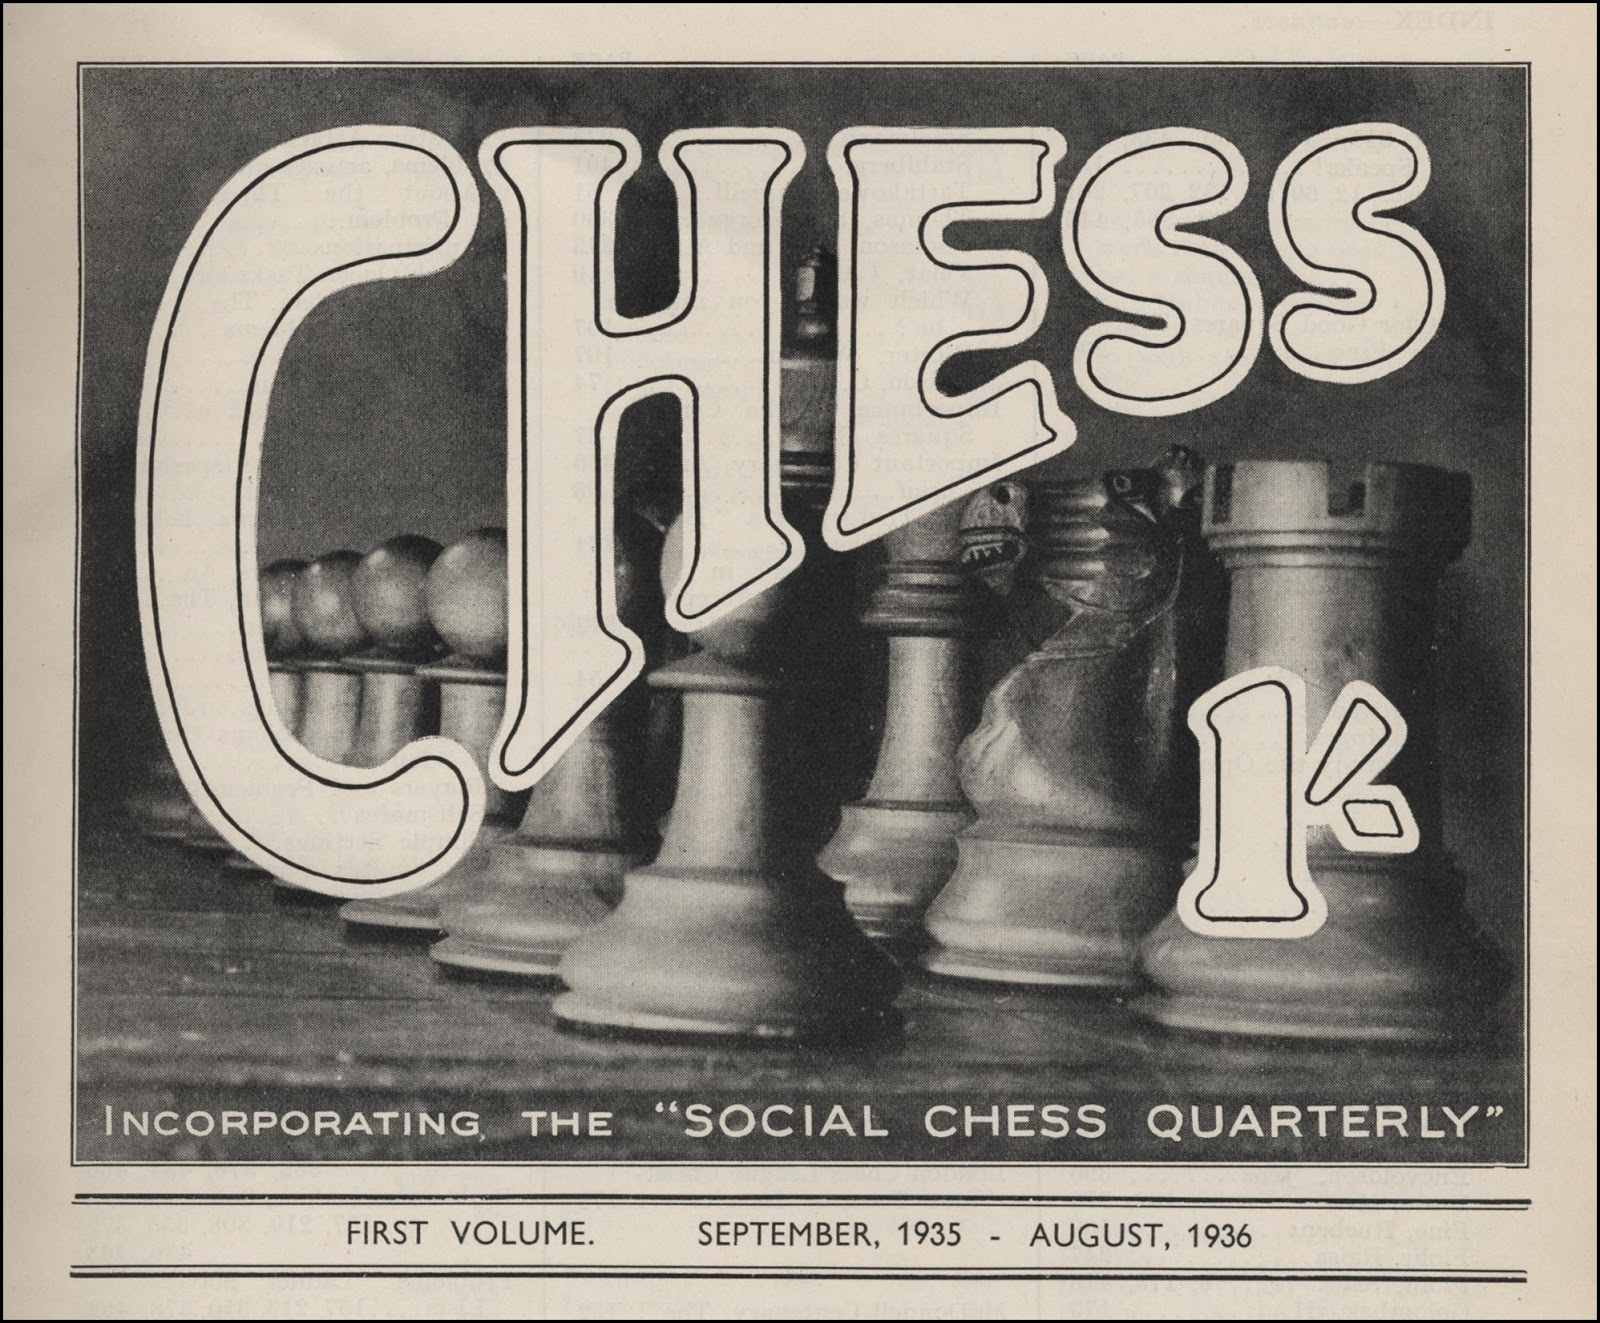 CHESS Cover for volume 1, September 1935 - August 1936. Source : Michael Clapham